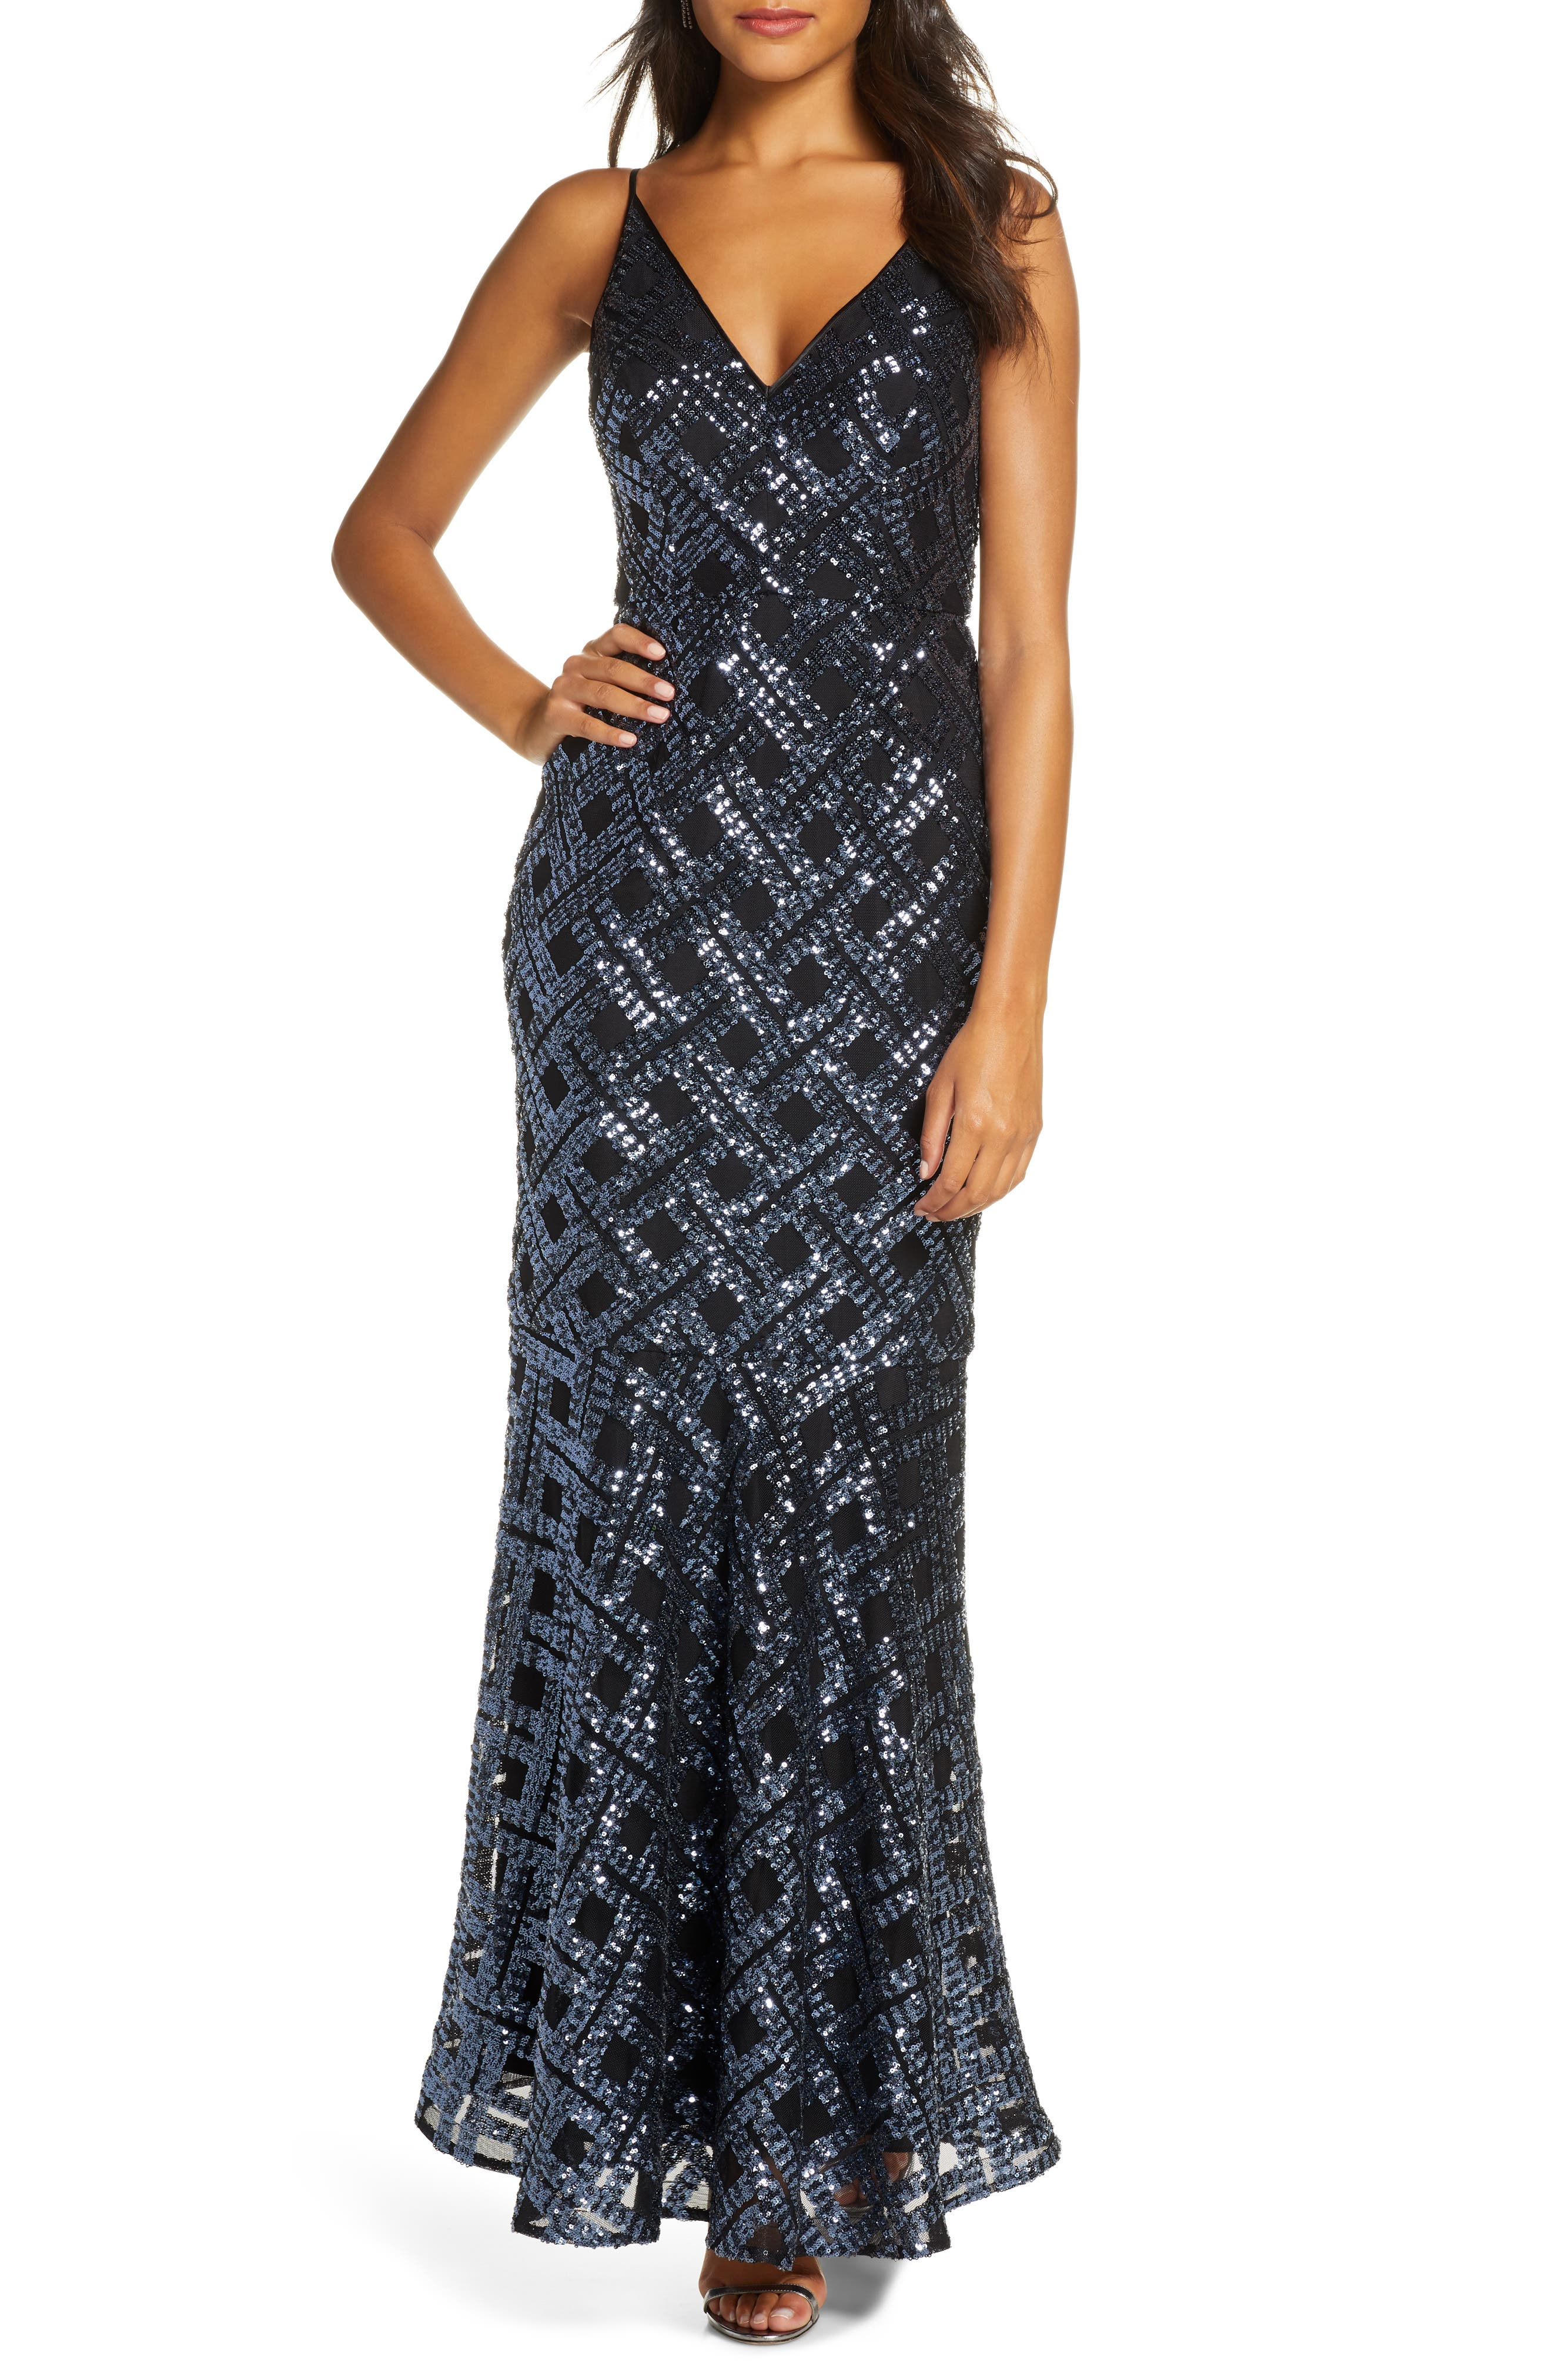 1930s Evening Dresses | Old Hollywood Dress Womens Eliza J Sequin Sleeveless Trumpet Gown $228.00 AT vintagedancer.com